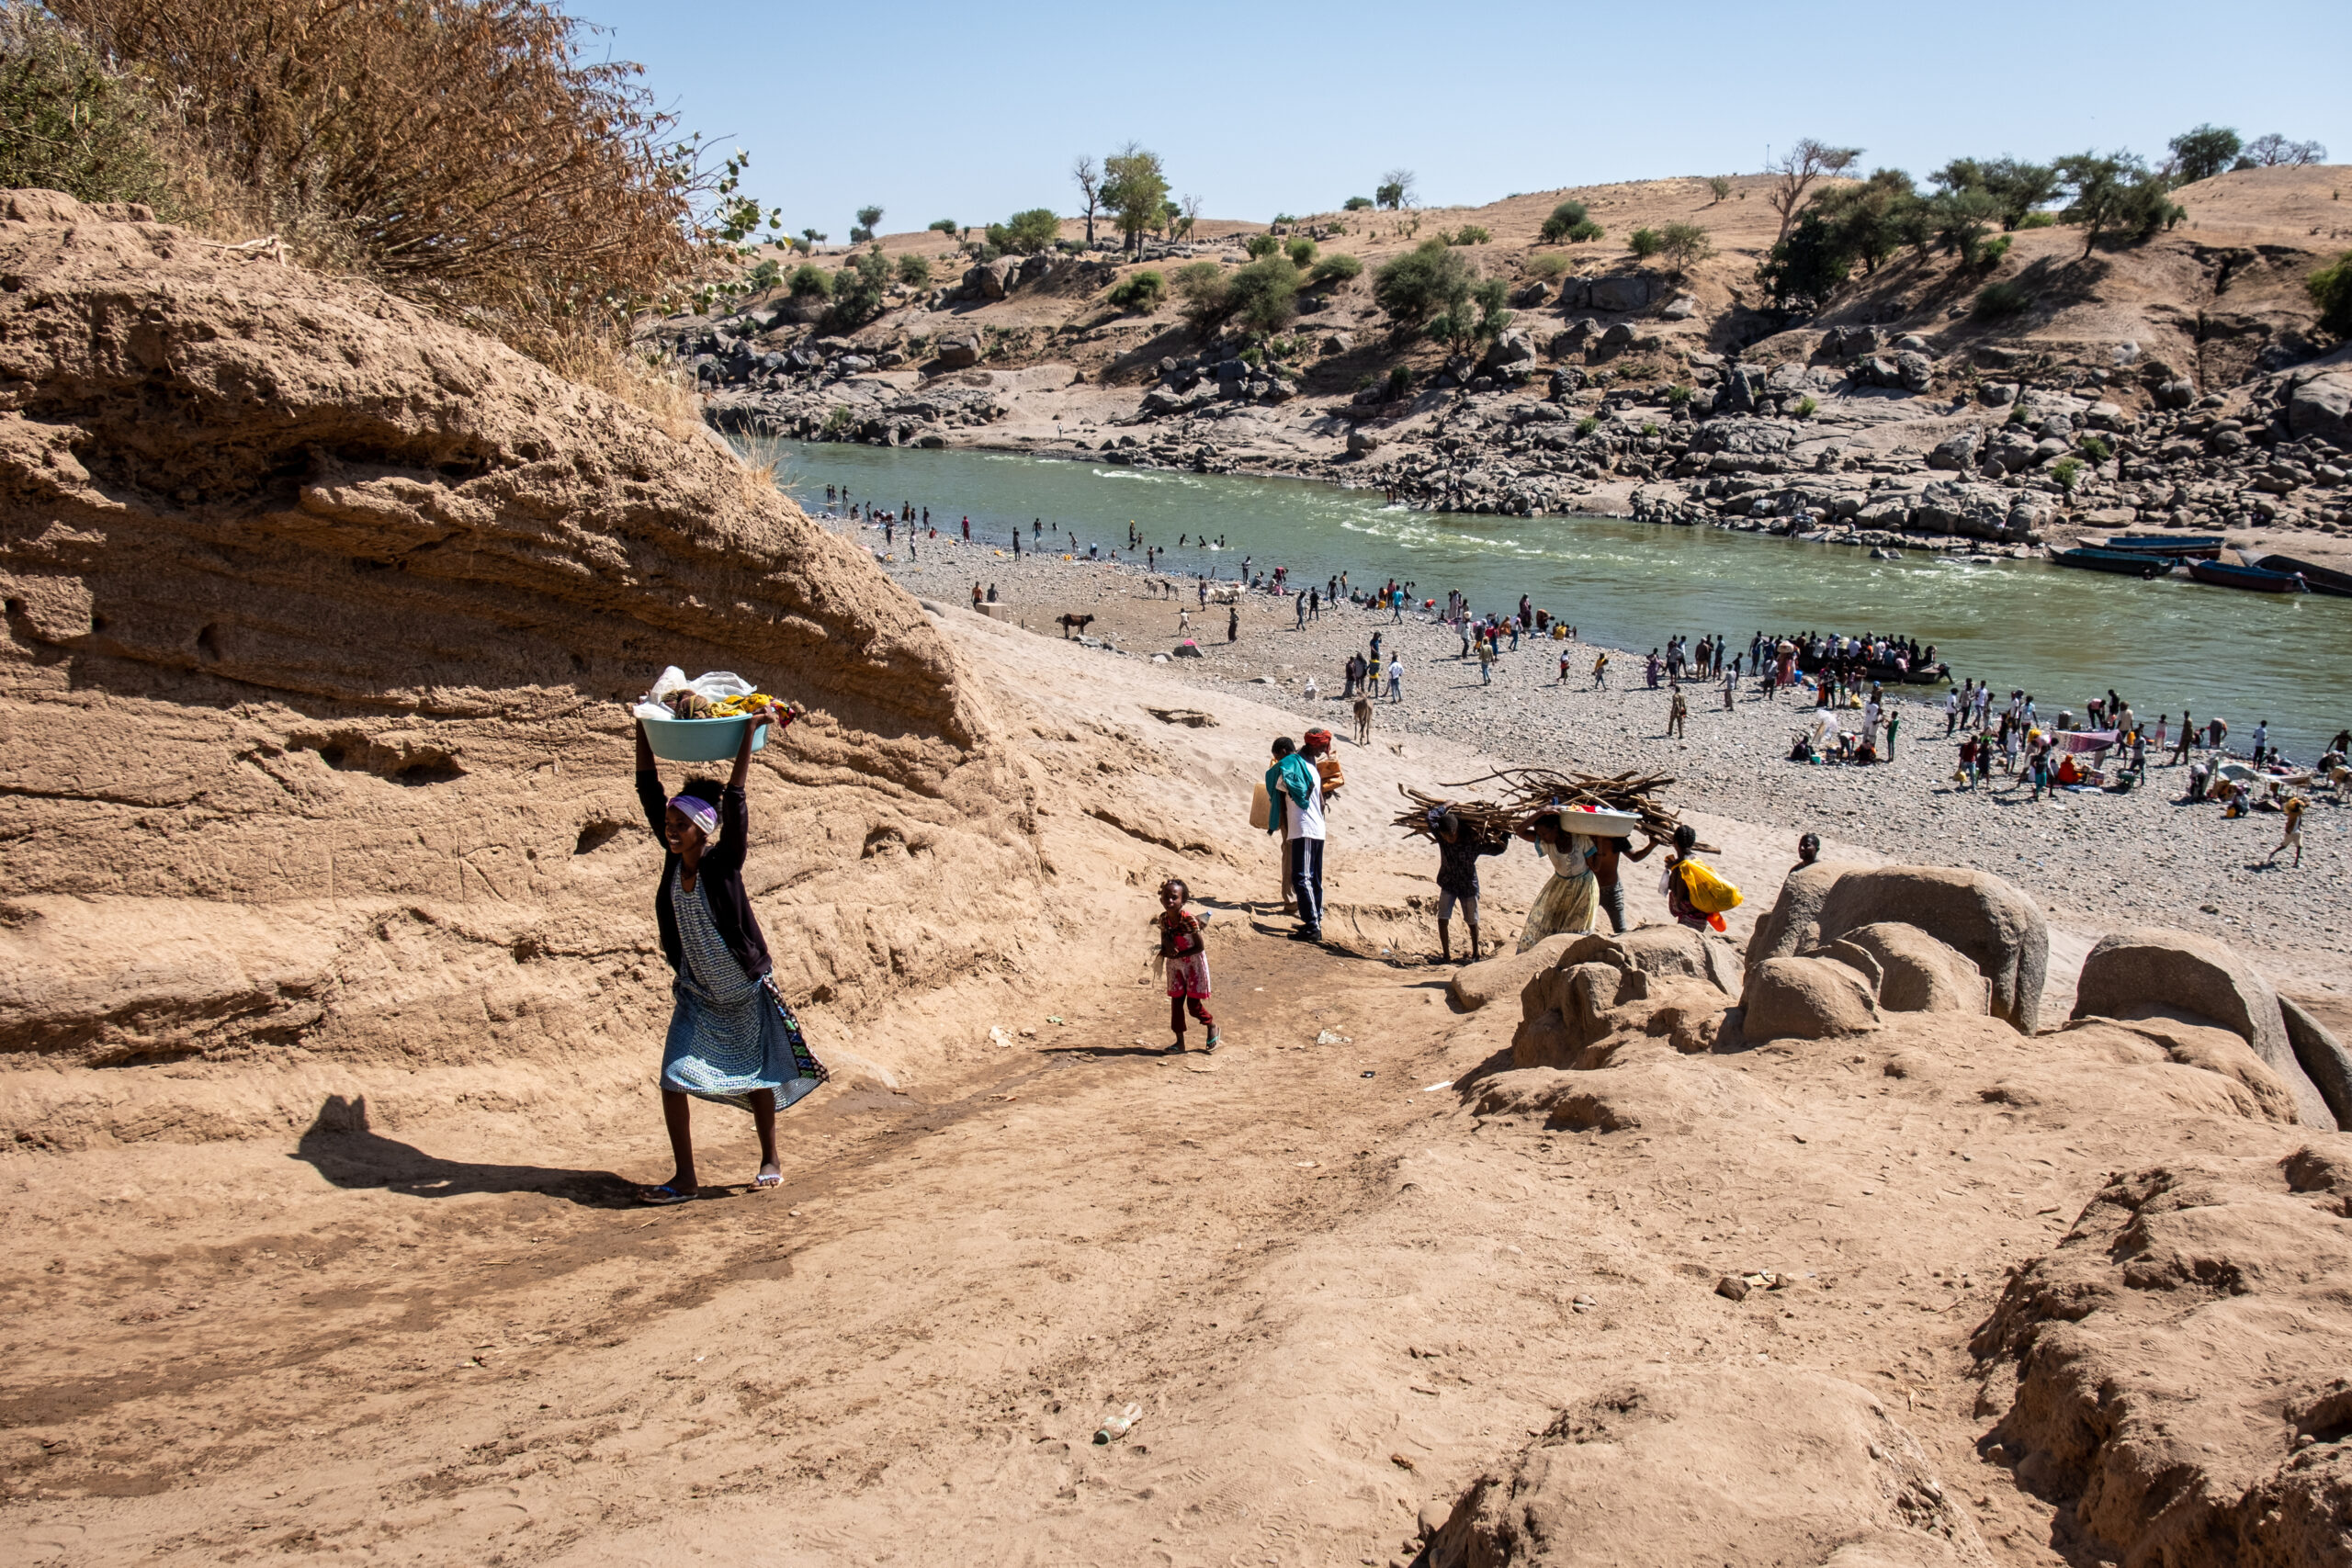 Ethiopian refugees cross the Tekeze River to a border town, Hamdayet. Photo by Joost Bastmeijer.